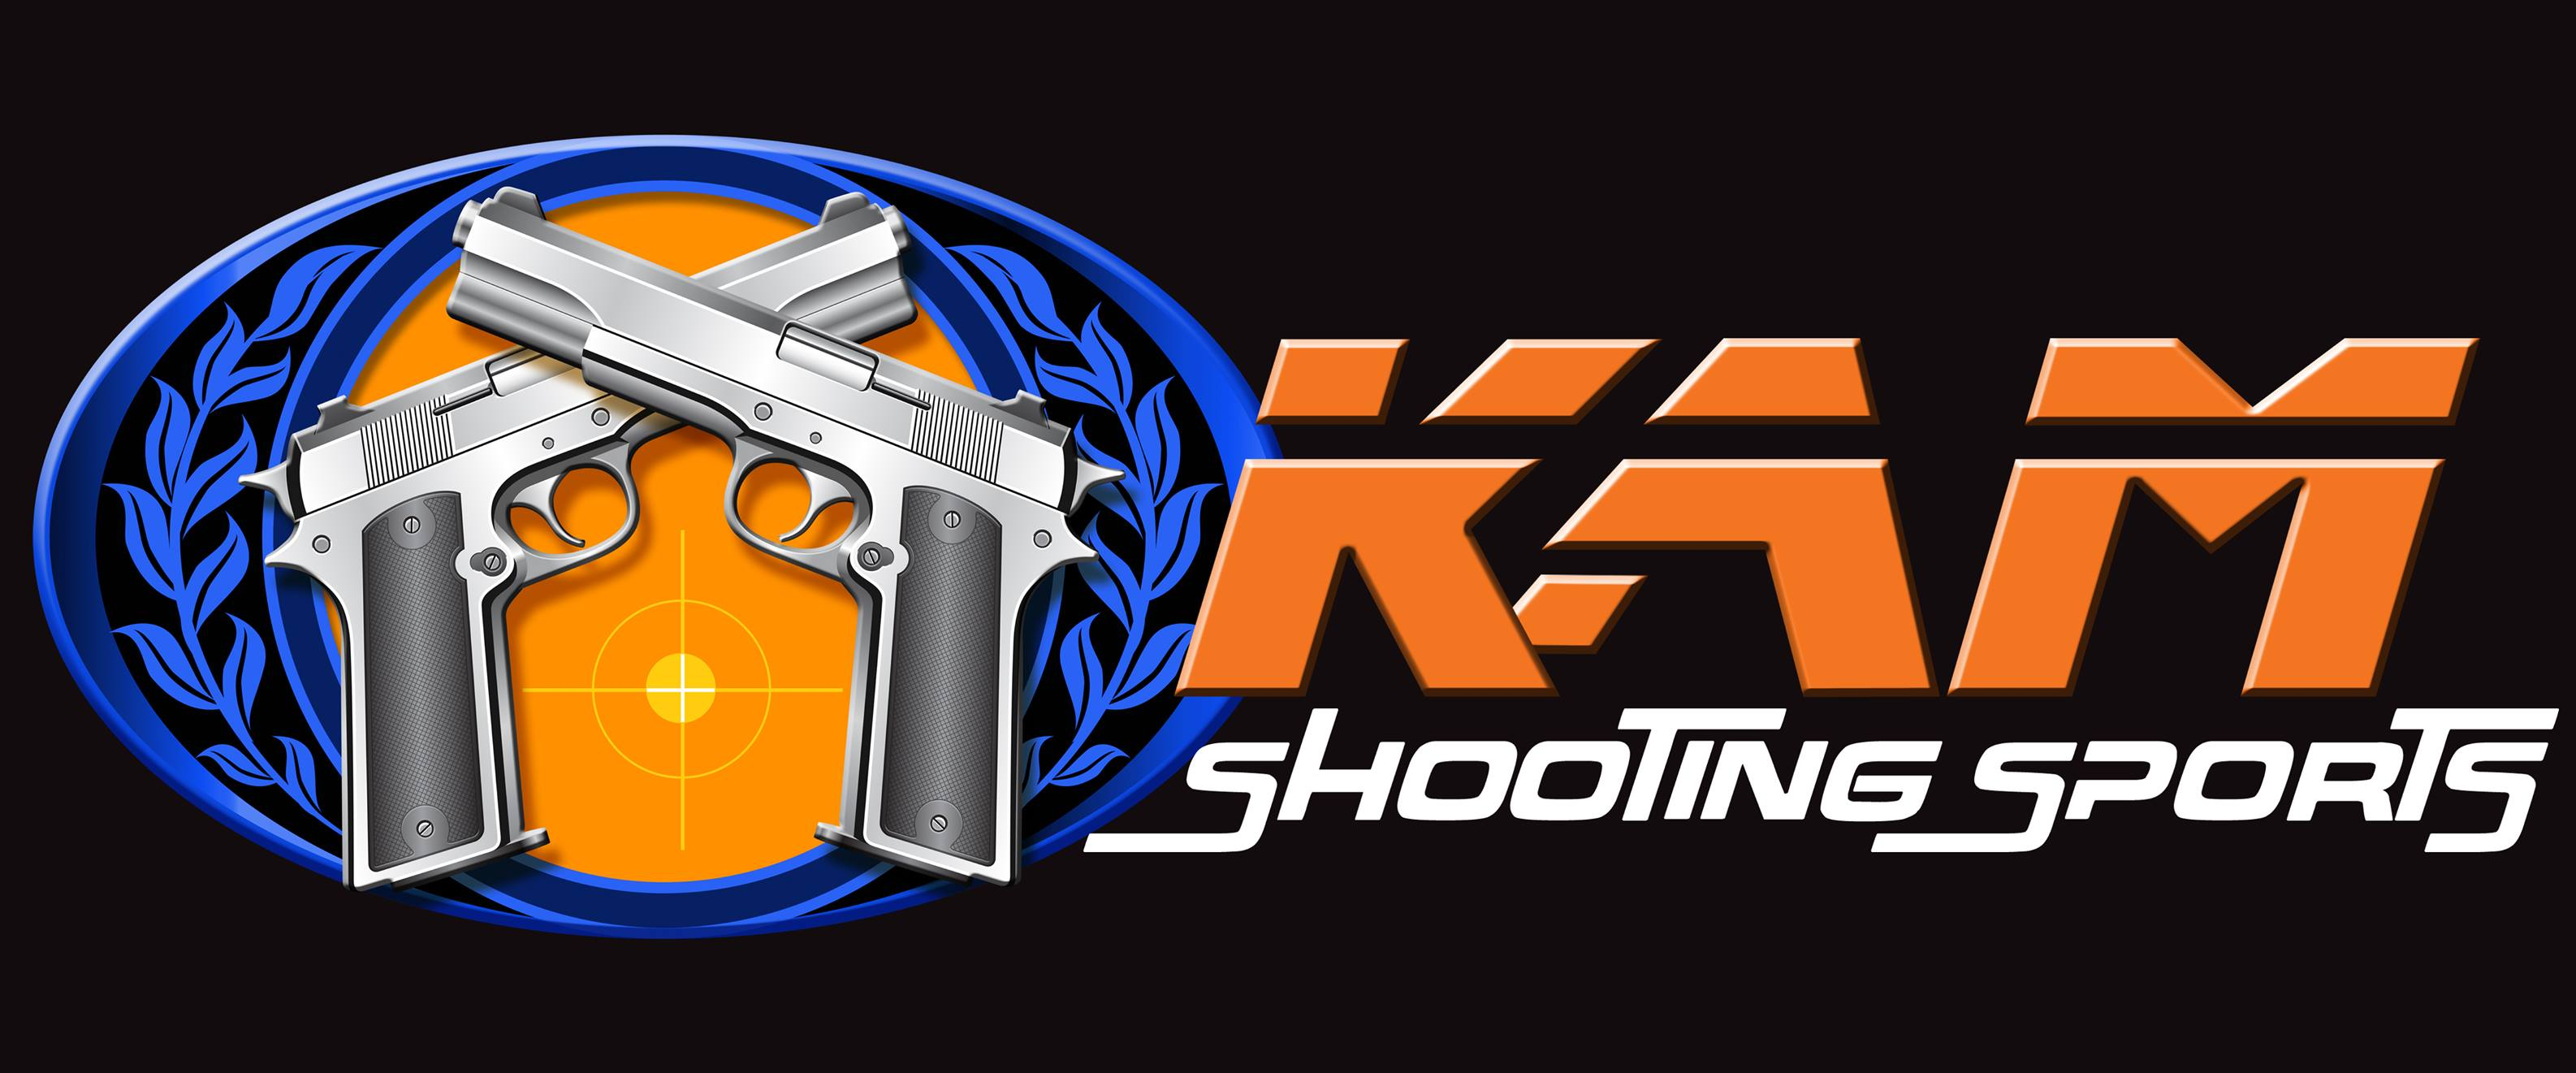 Kam_Shooting_Sports_Logo.jpg